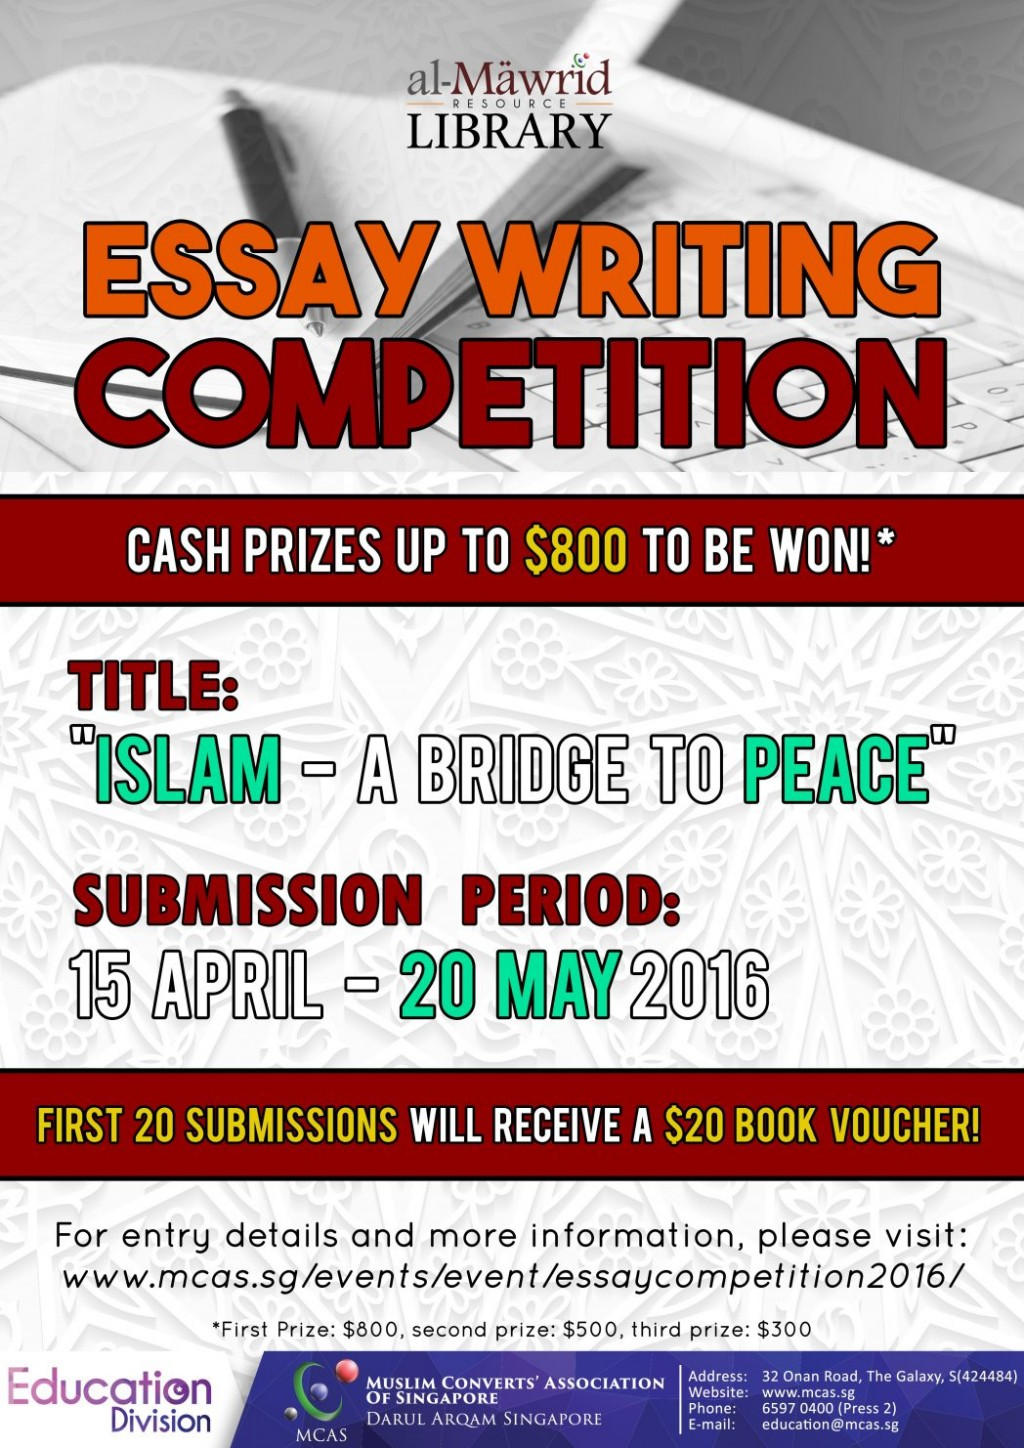 024 Buysay Com Ua Close Up Front Rank Firm In Australia To Writing Contest Criteria Version 2 Competition New Philippines Rubrics Mechanics Guidelines Tips For Nutrition 1048x1482 Incredible Essay College Students By Essayhub Sample Large